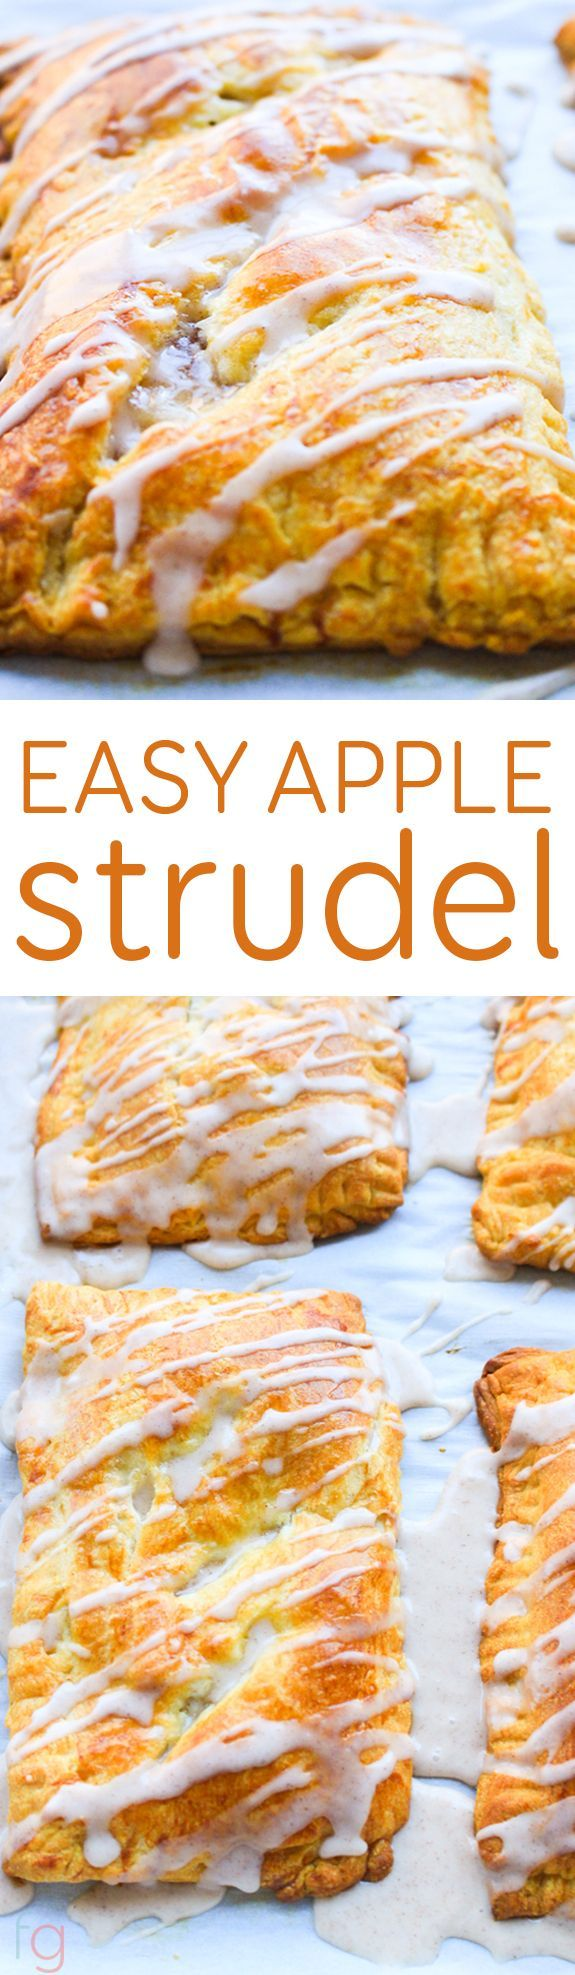 Apple Strudel Recipe with Cinnamon Icing - Easy Dessert or Breakfast Idea that's great for the holidays (and perfect for fall!)! via /frugalitygal/ #holidaysmadeeasy #savealotinsiders #AD